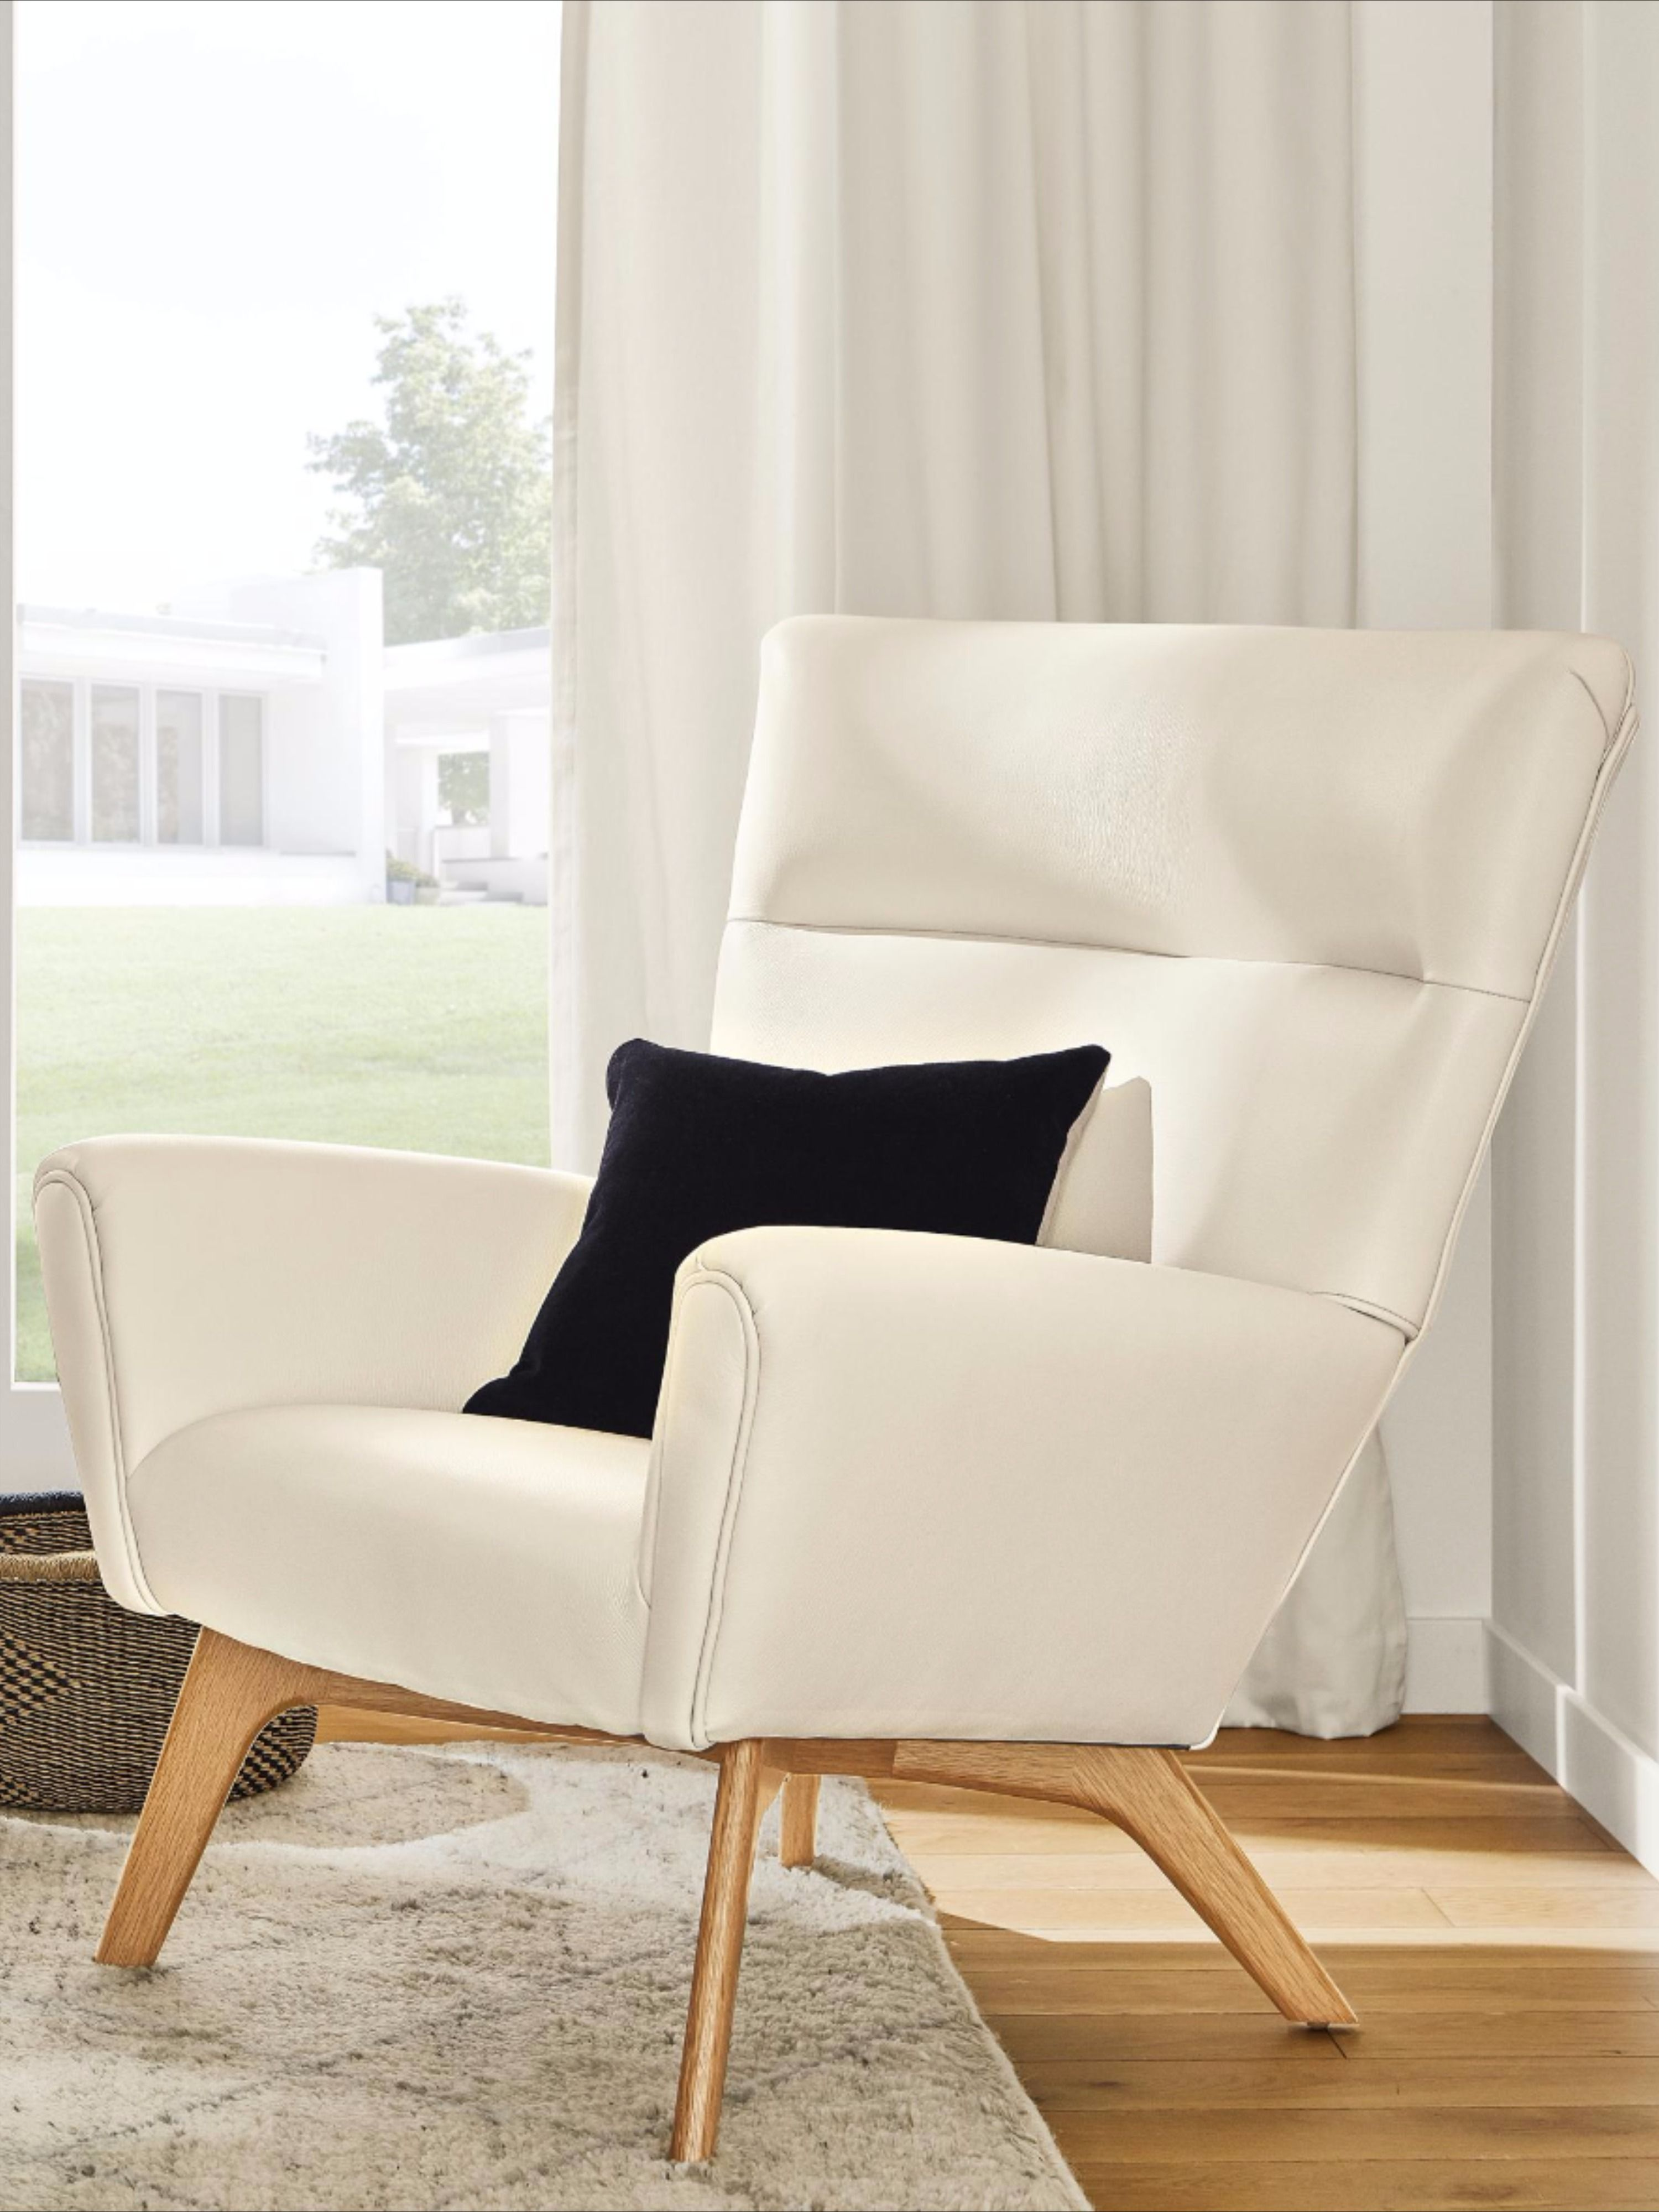 Boden Leather Chair & Ottoman Modern Accent & Lounge